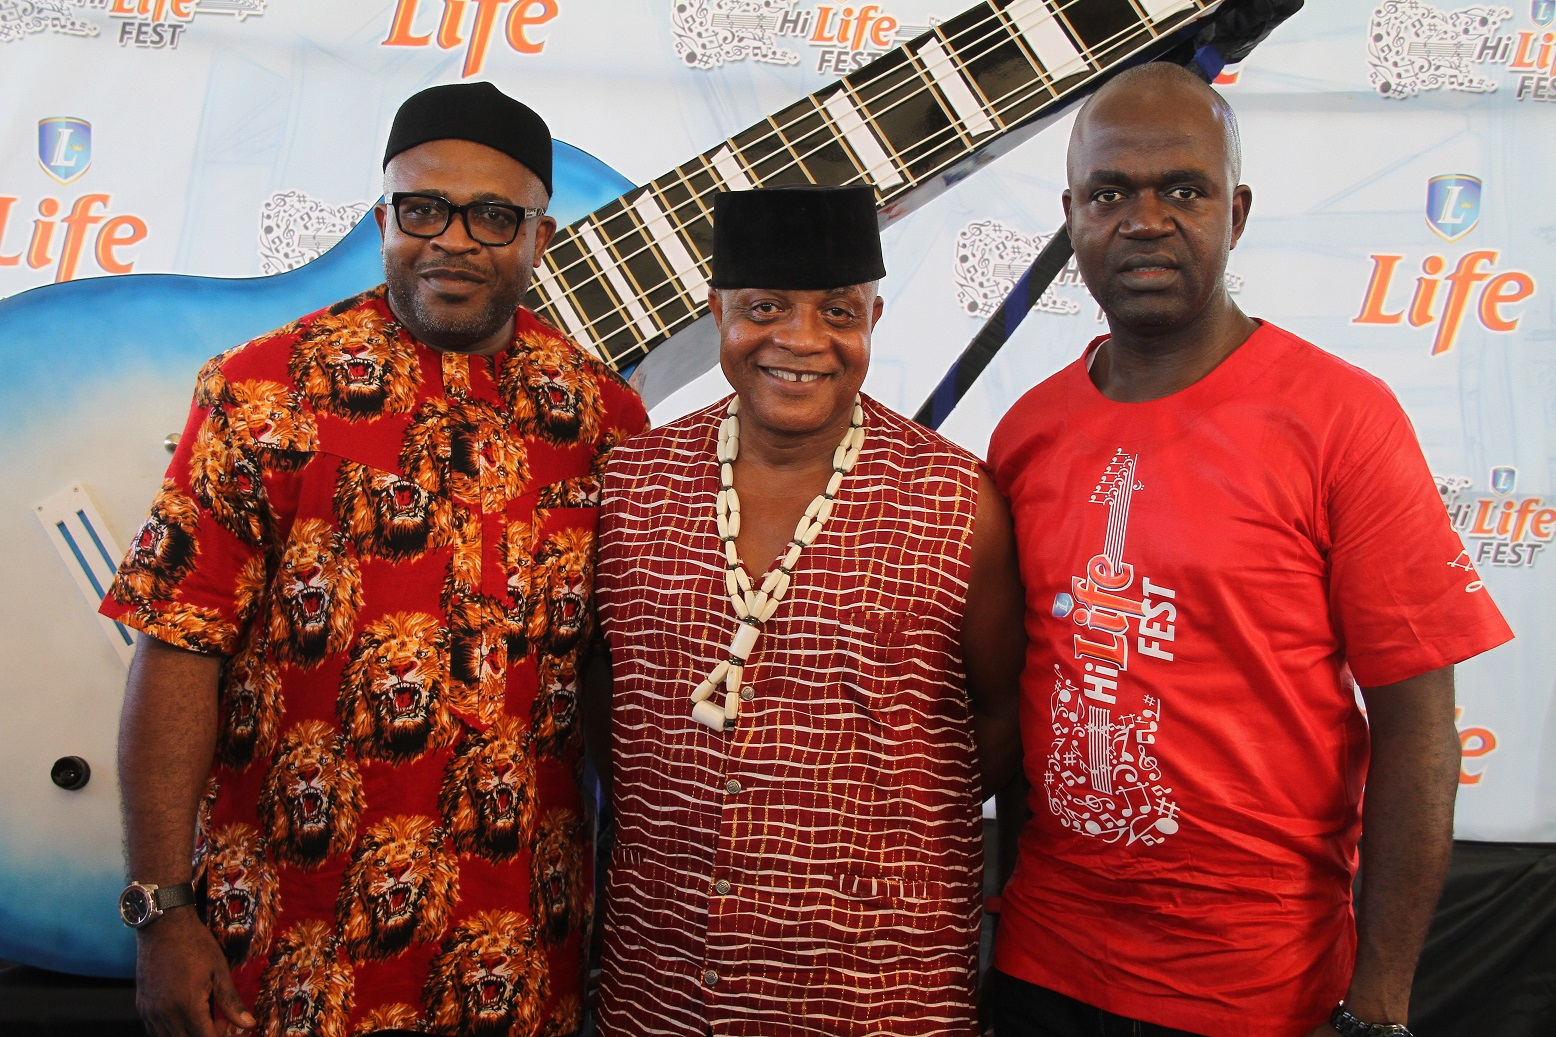 Life Continental Beer brings Hi-Life Fest to South East Nigeria